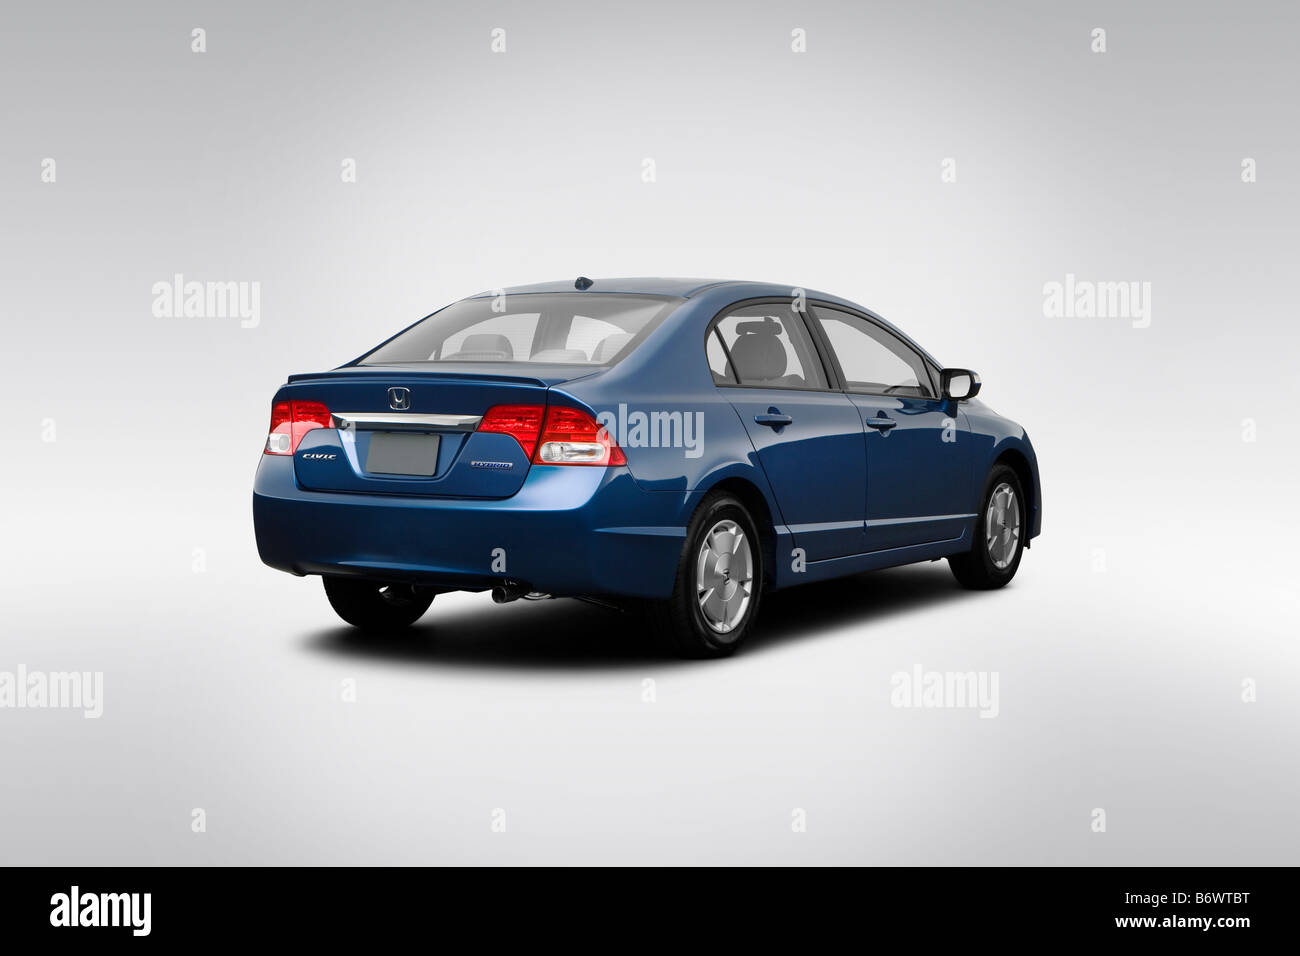 2009 Honda Civic Hybrid In Blue   Rear Angle View